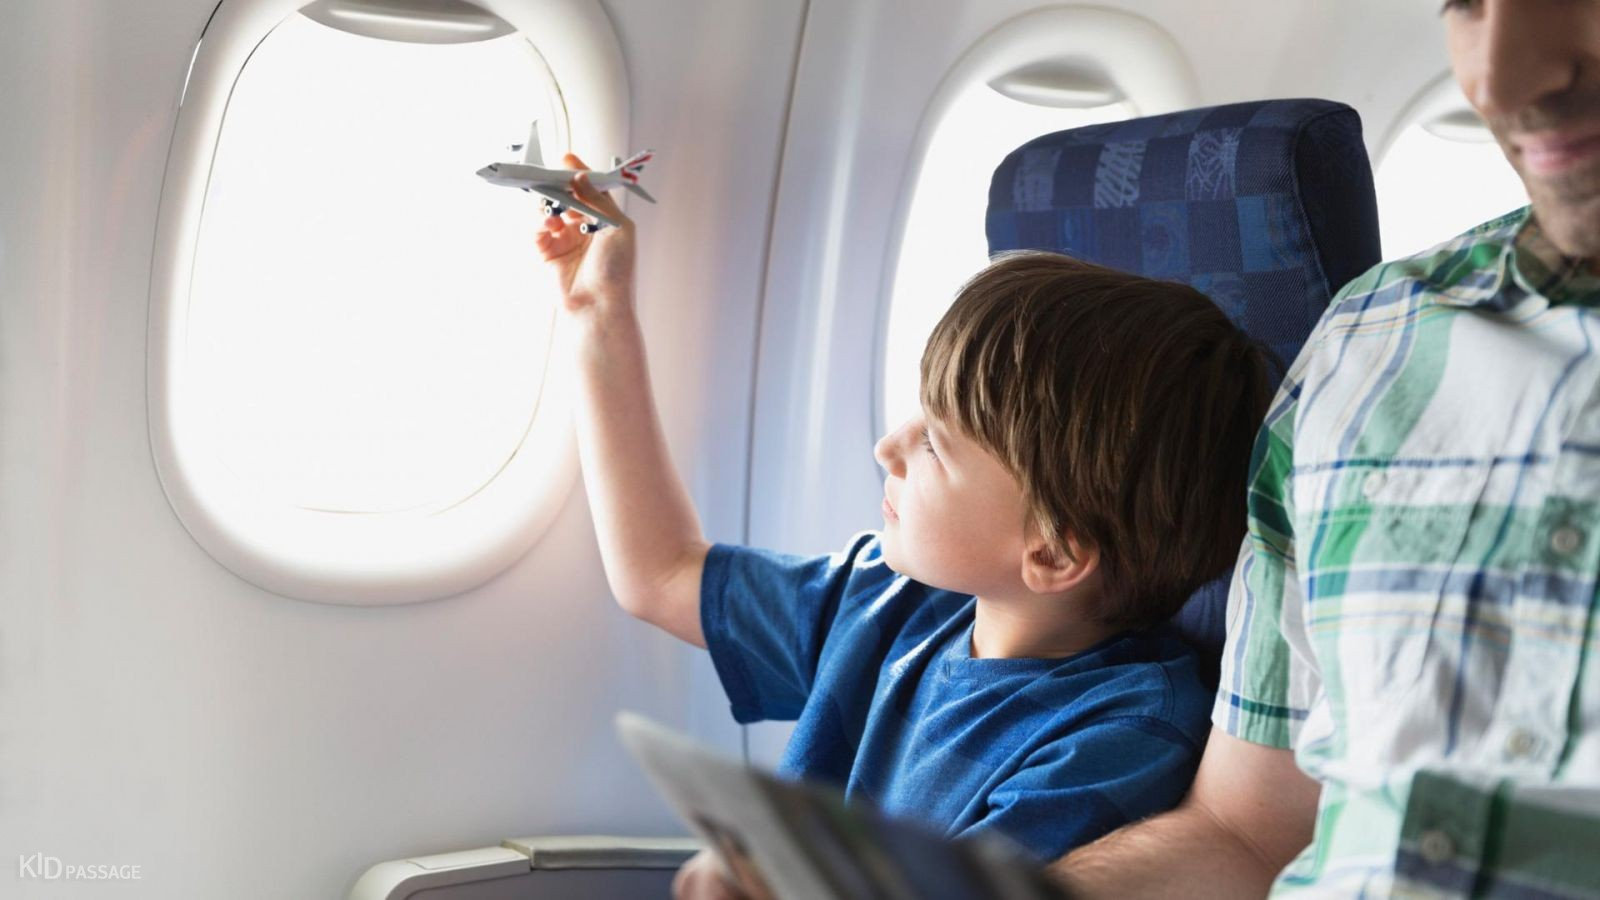 Doctors advise travelers with children to choose night flights